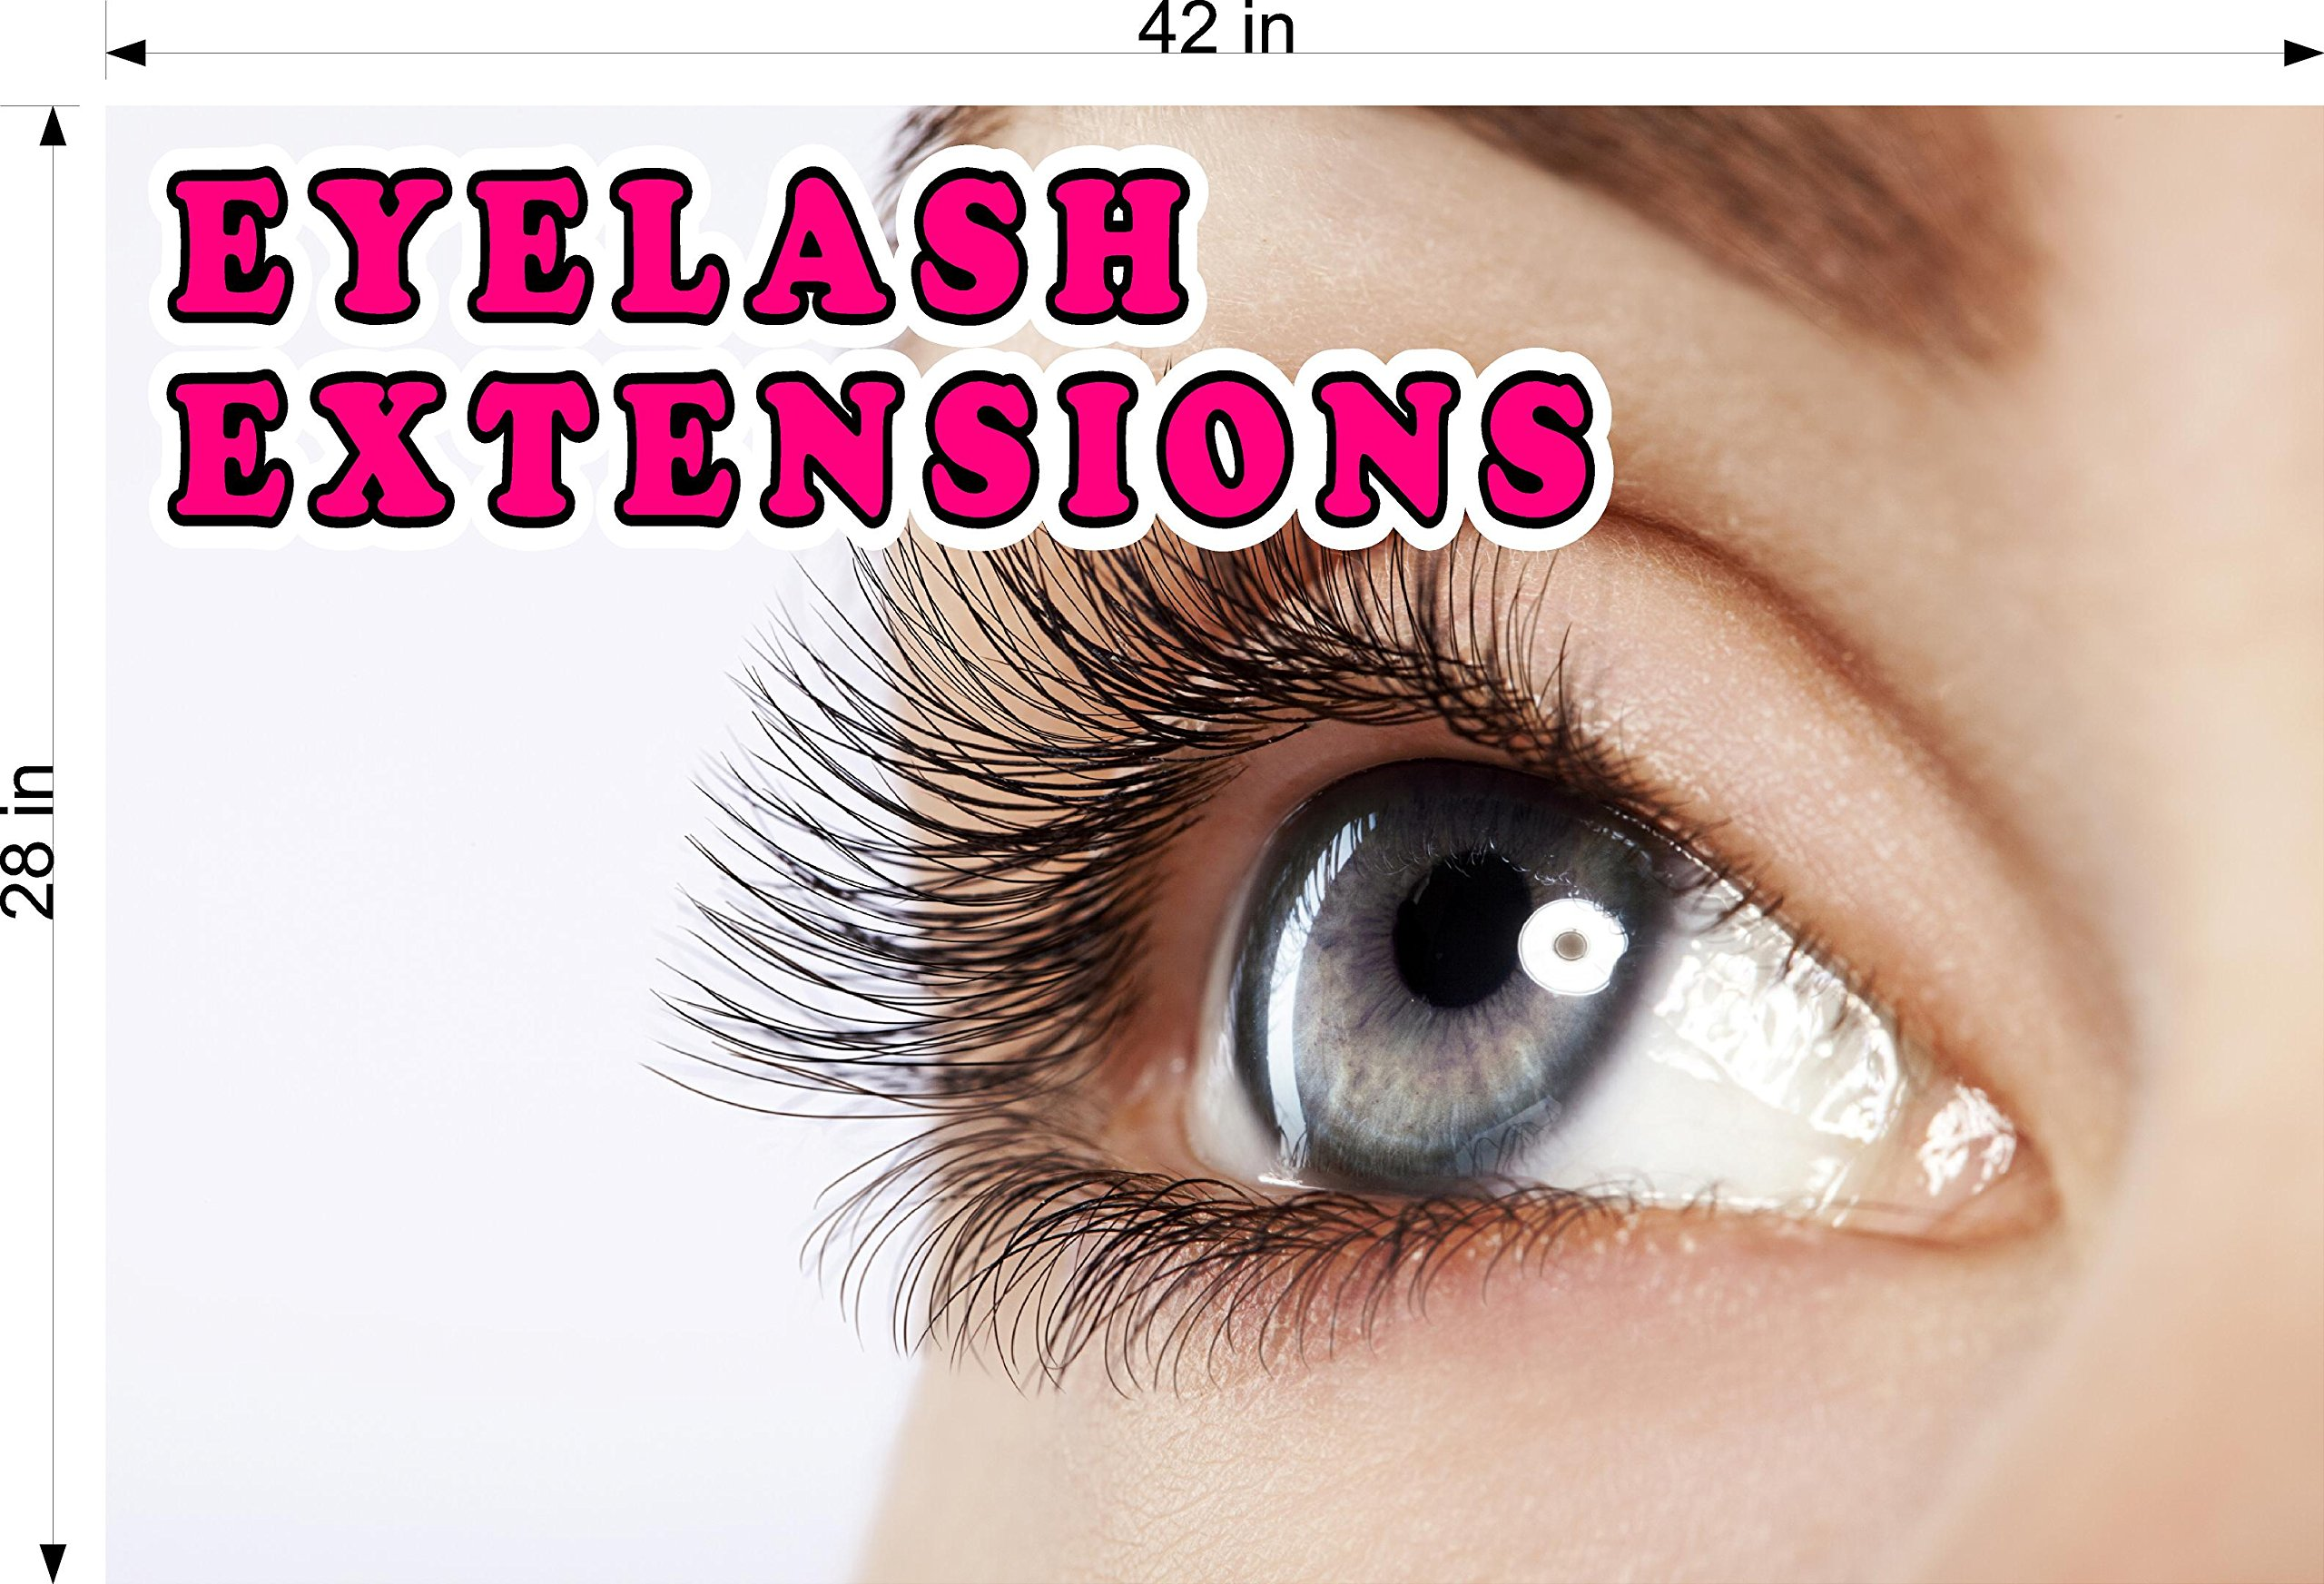 Cmyads.net Eyelash IX Eyelashes Eye Lash Extensions Woman Cosmetic Perforated Window removing hair See Though Salon Poster Vinyl 70/30 Tweezers Thin Out Shape Vertical (42'')